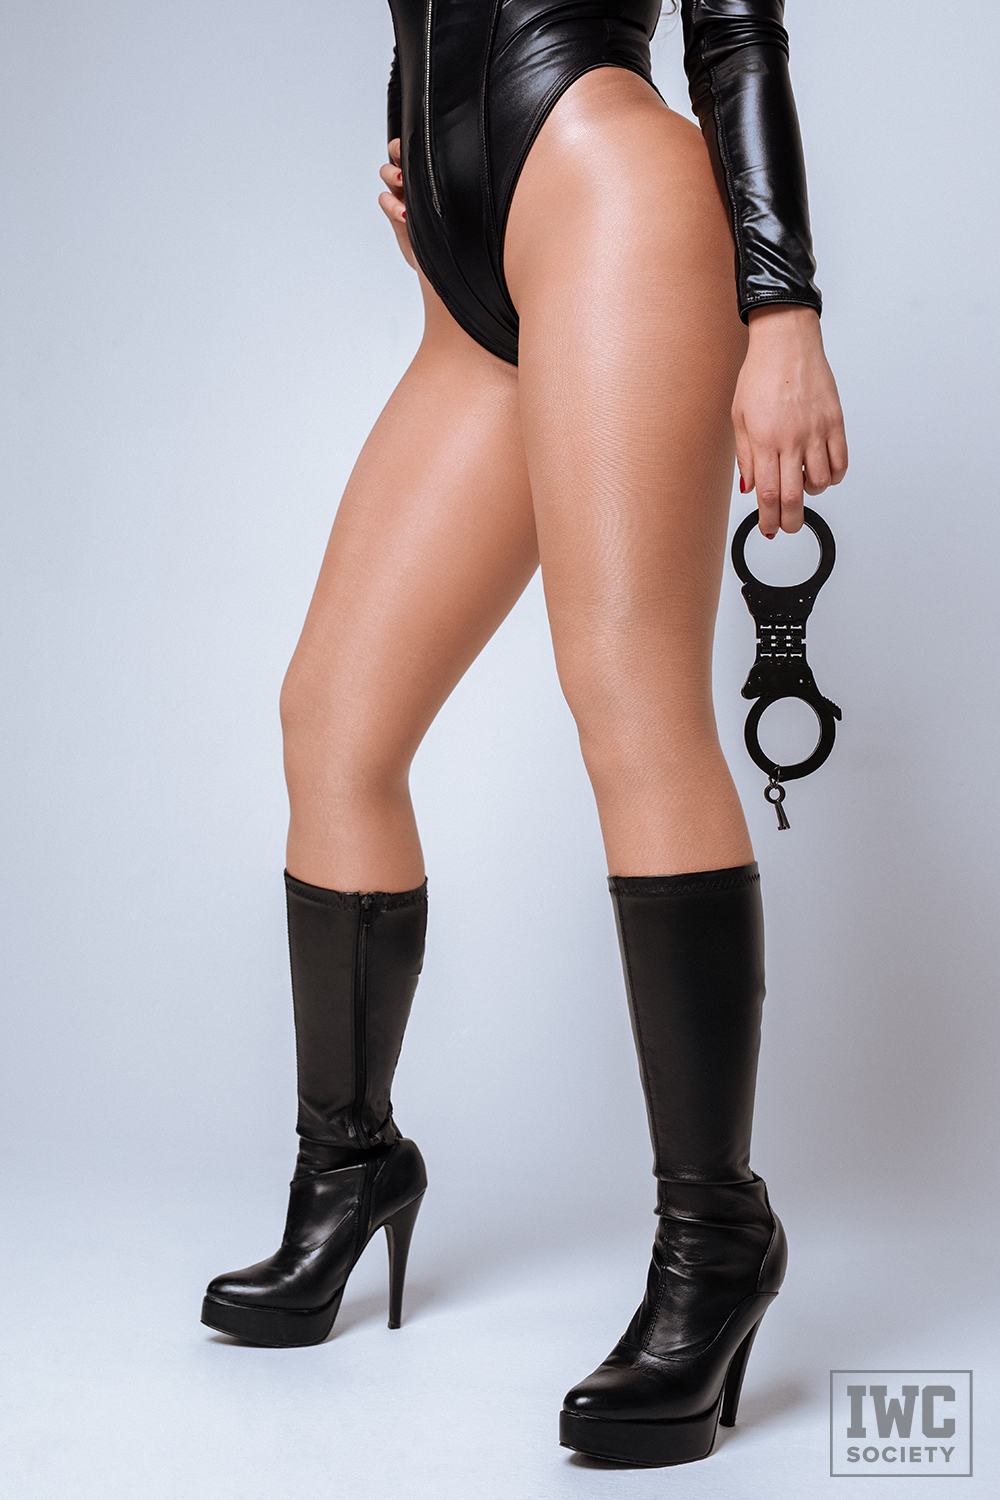 femdom woman's legs in black boots and holding handcuffs